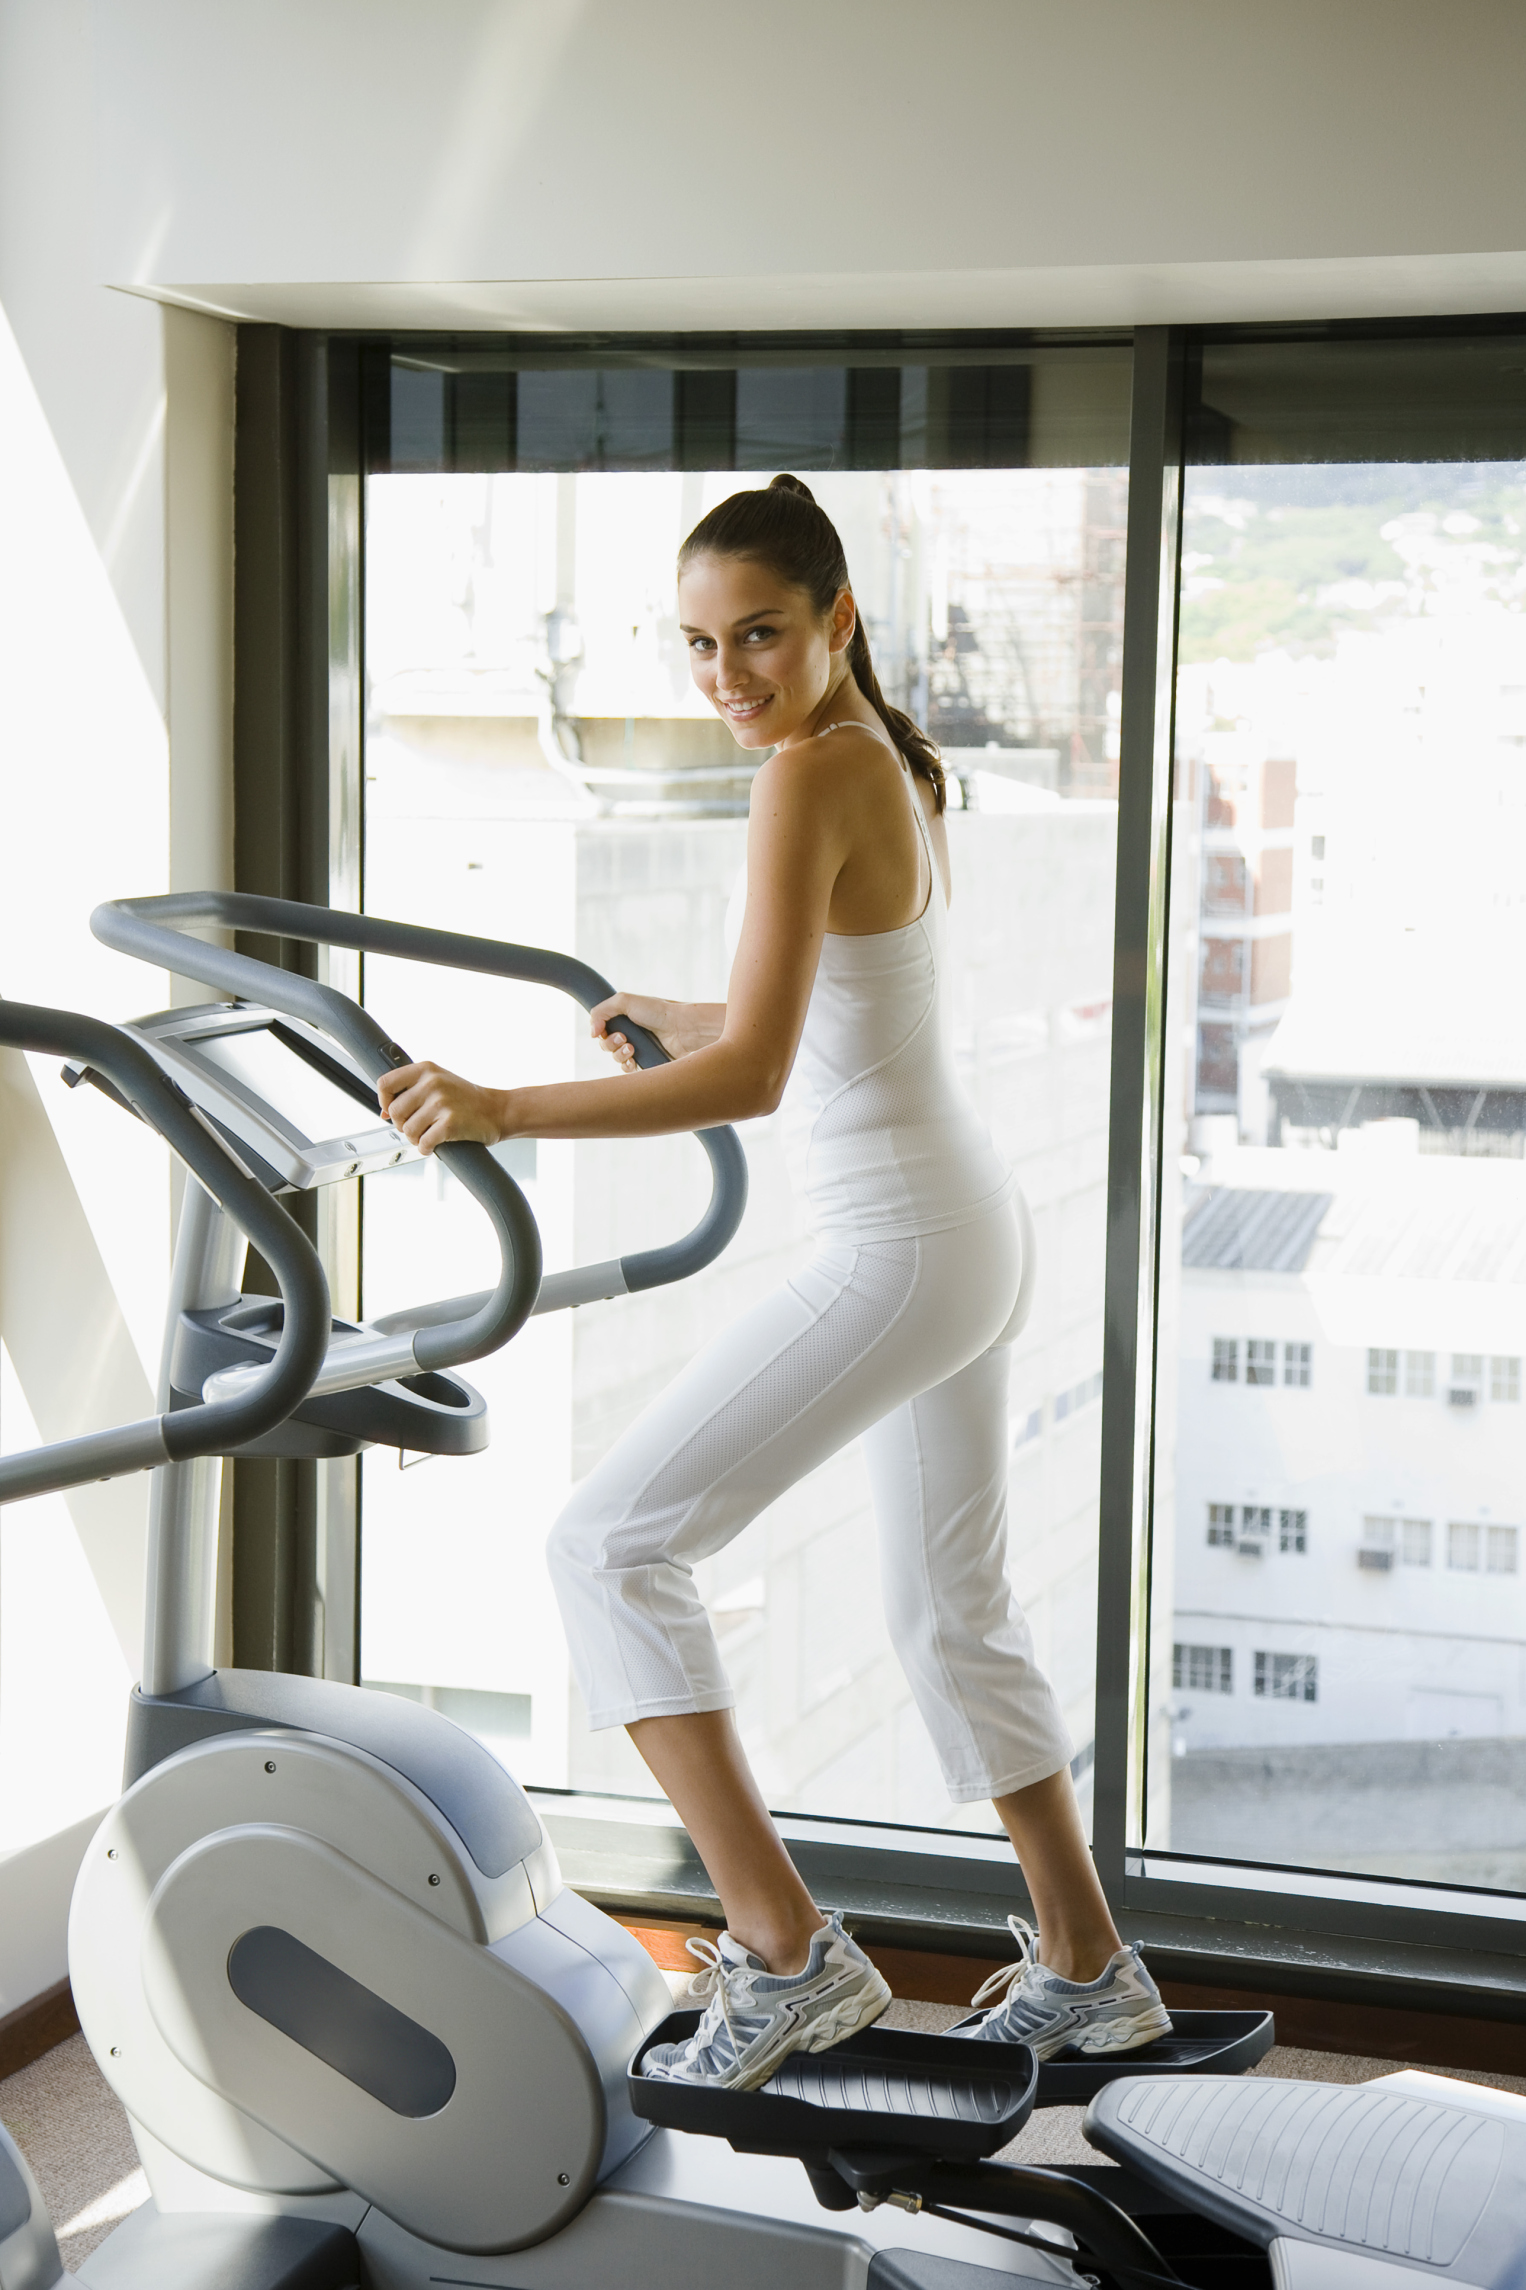 Is 1000 Calories On An Elliptical A Good Way To Lose Weight